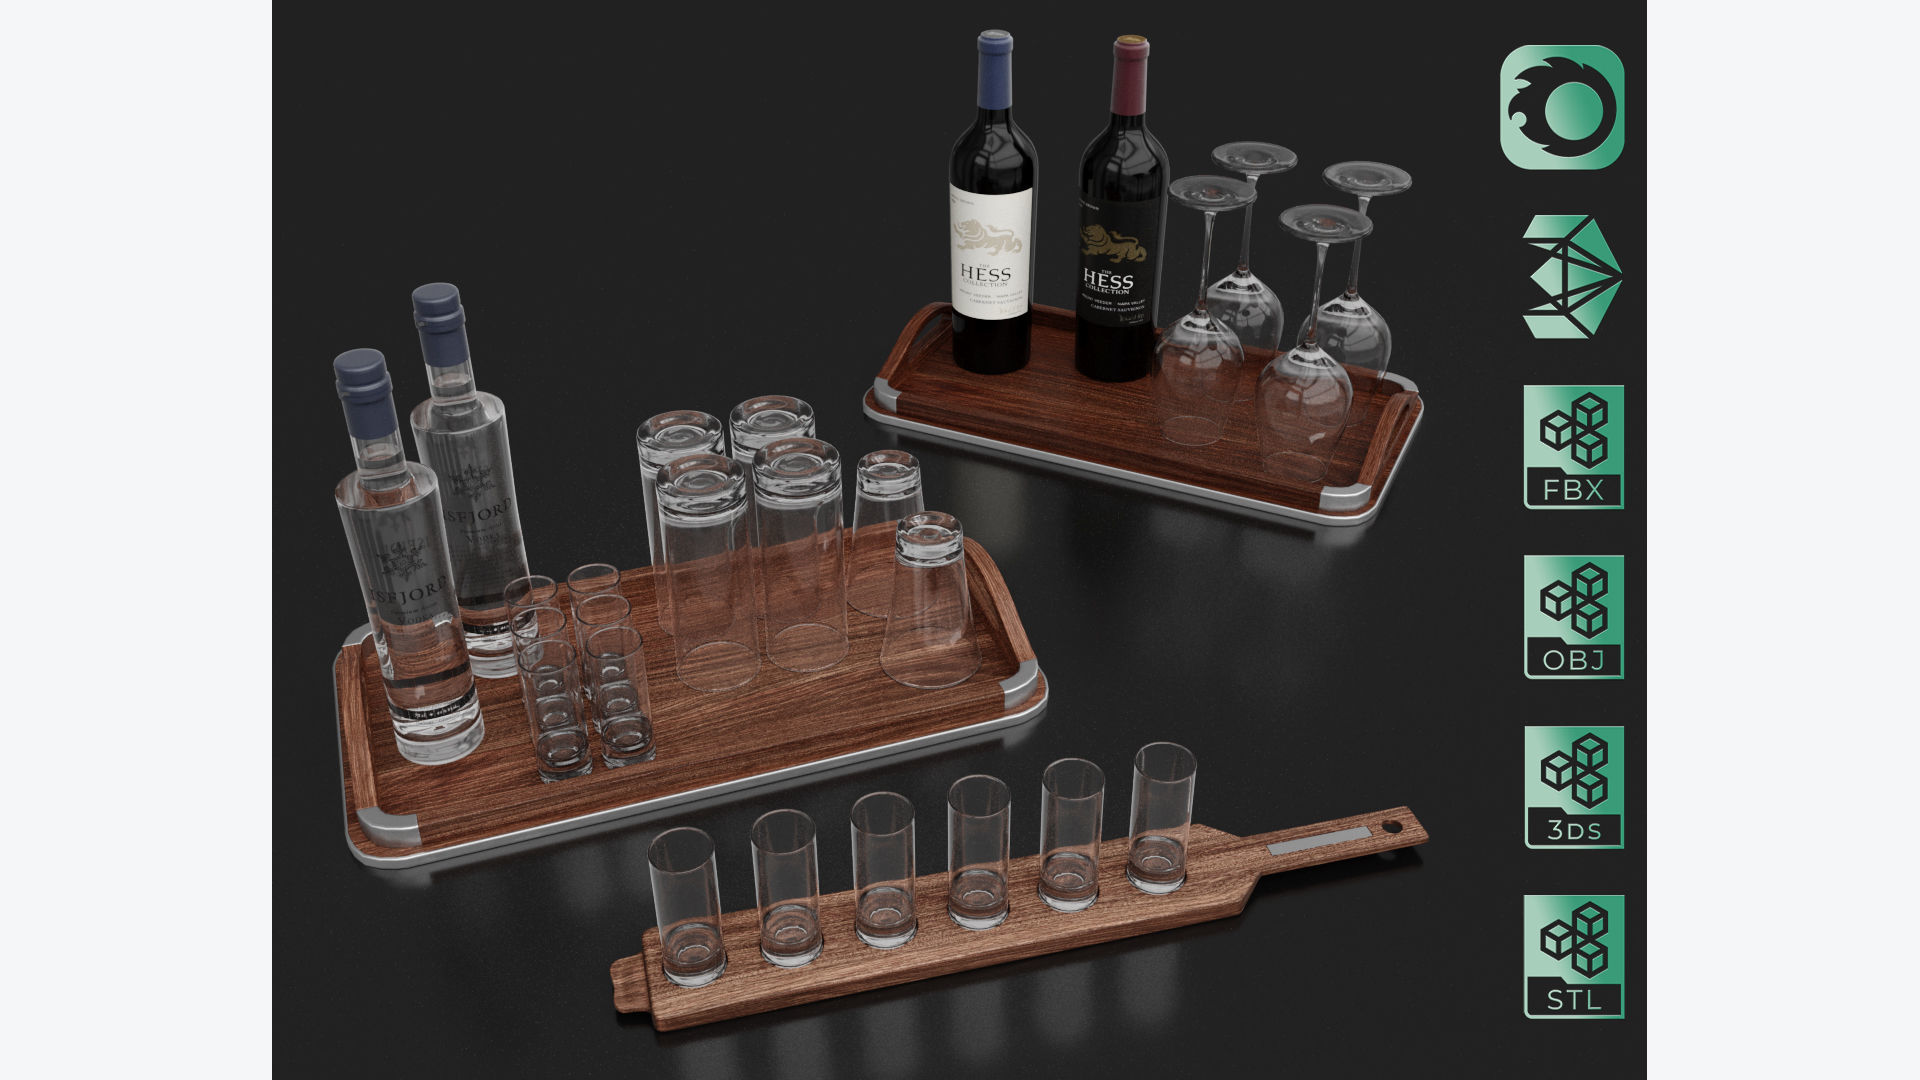 Vodka and Wine bottles with glass on board set